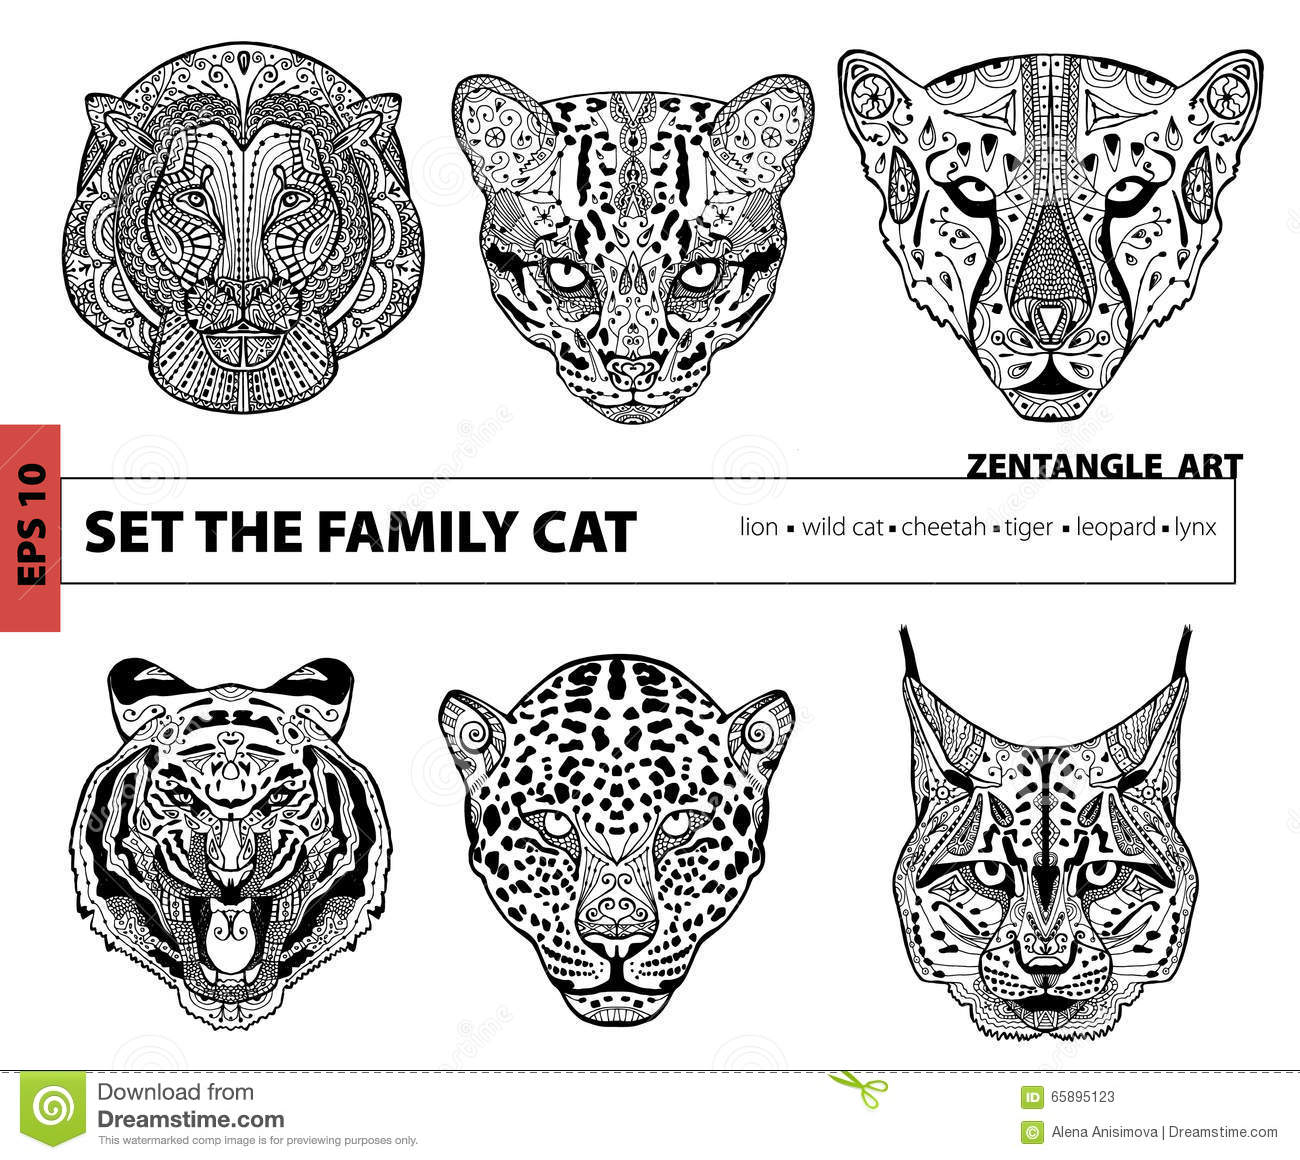 Coloring book for adults lion - Anti Stress Coloring Book Lion Set The Family Cat Coloring Book For Adults Zentangle Art